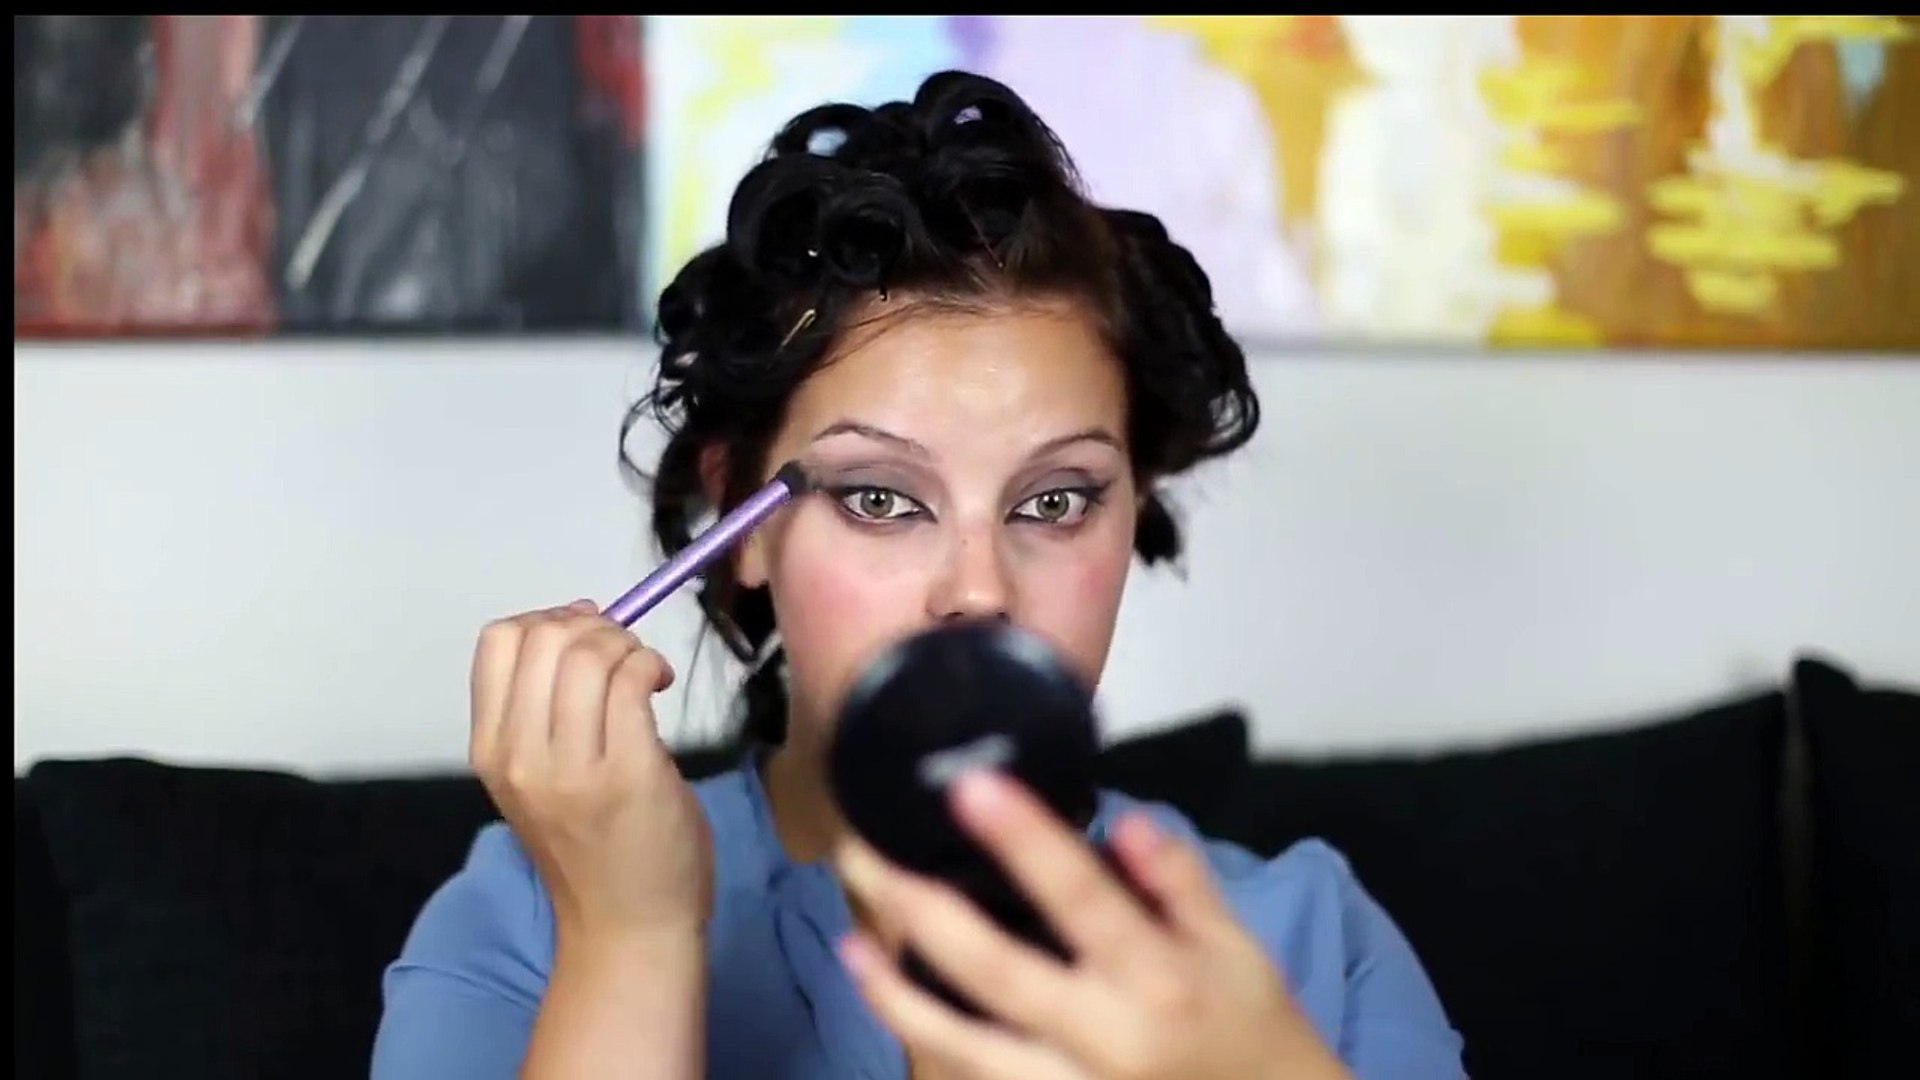 Hair and Costume Makeup, Hope You Like The Makeup Artist Video